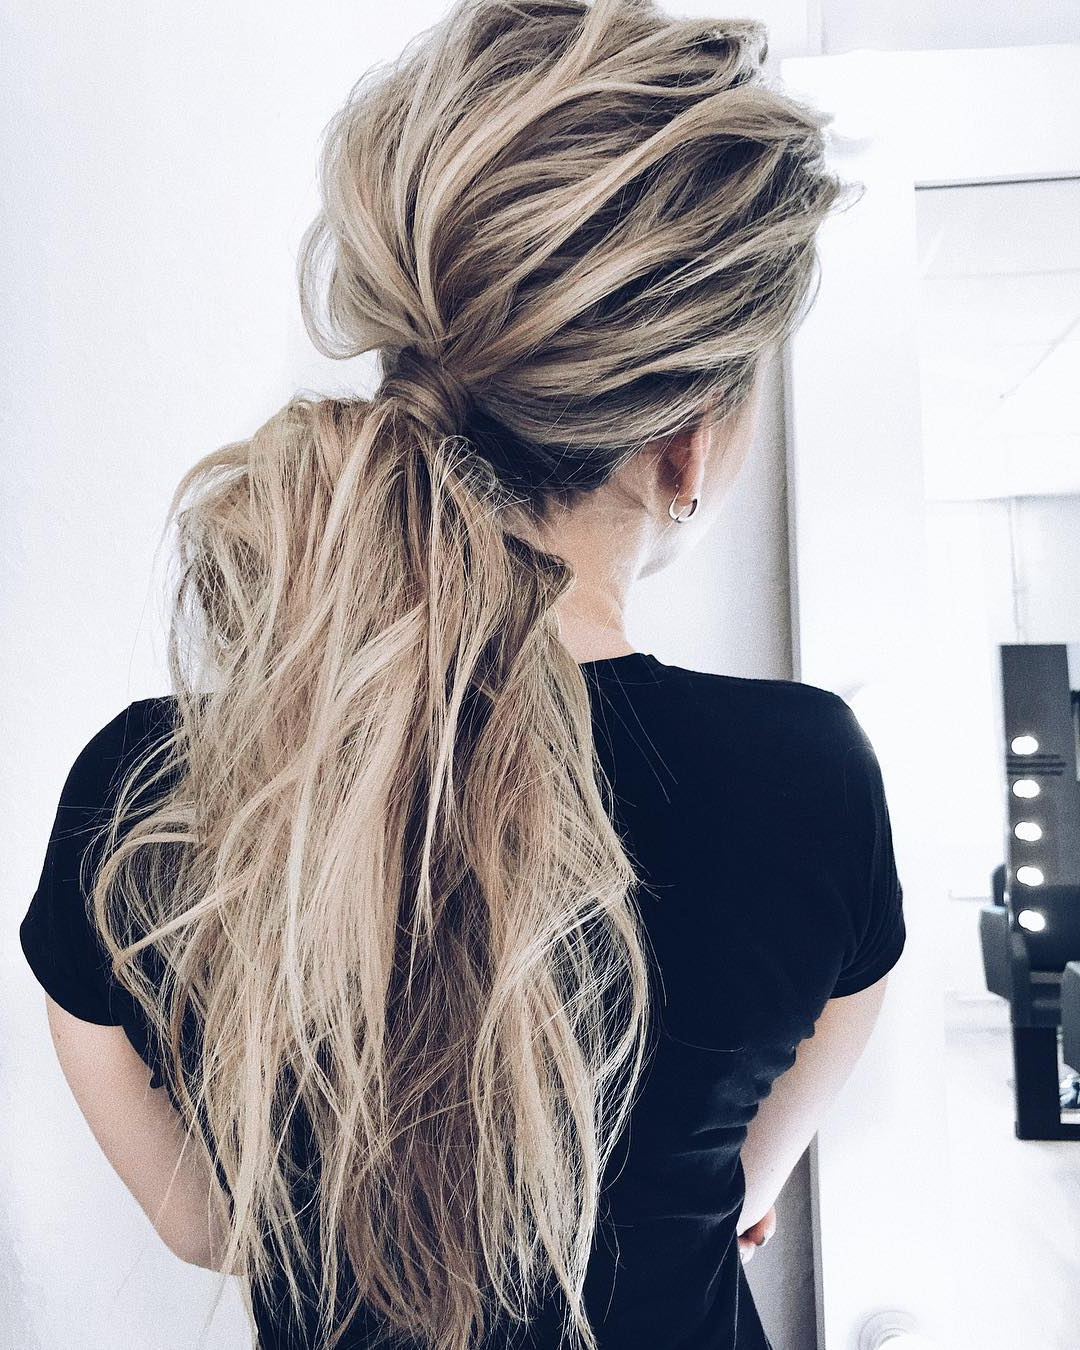 Well Liked Loose Low Ponytail Hairstyles With Casual Side Bang Throughout 10 Creative Ponytail Hairstyles For Long Hair, Summer (View 16 of 20)